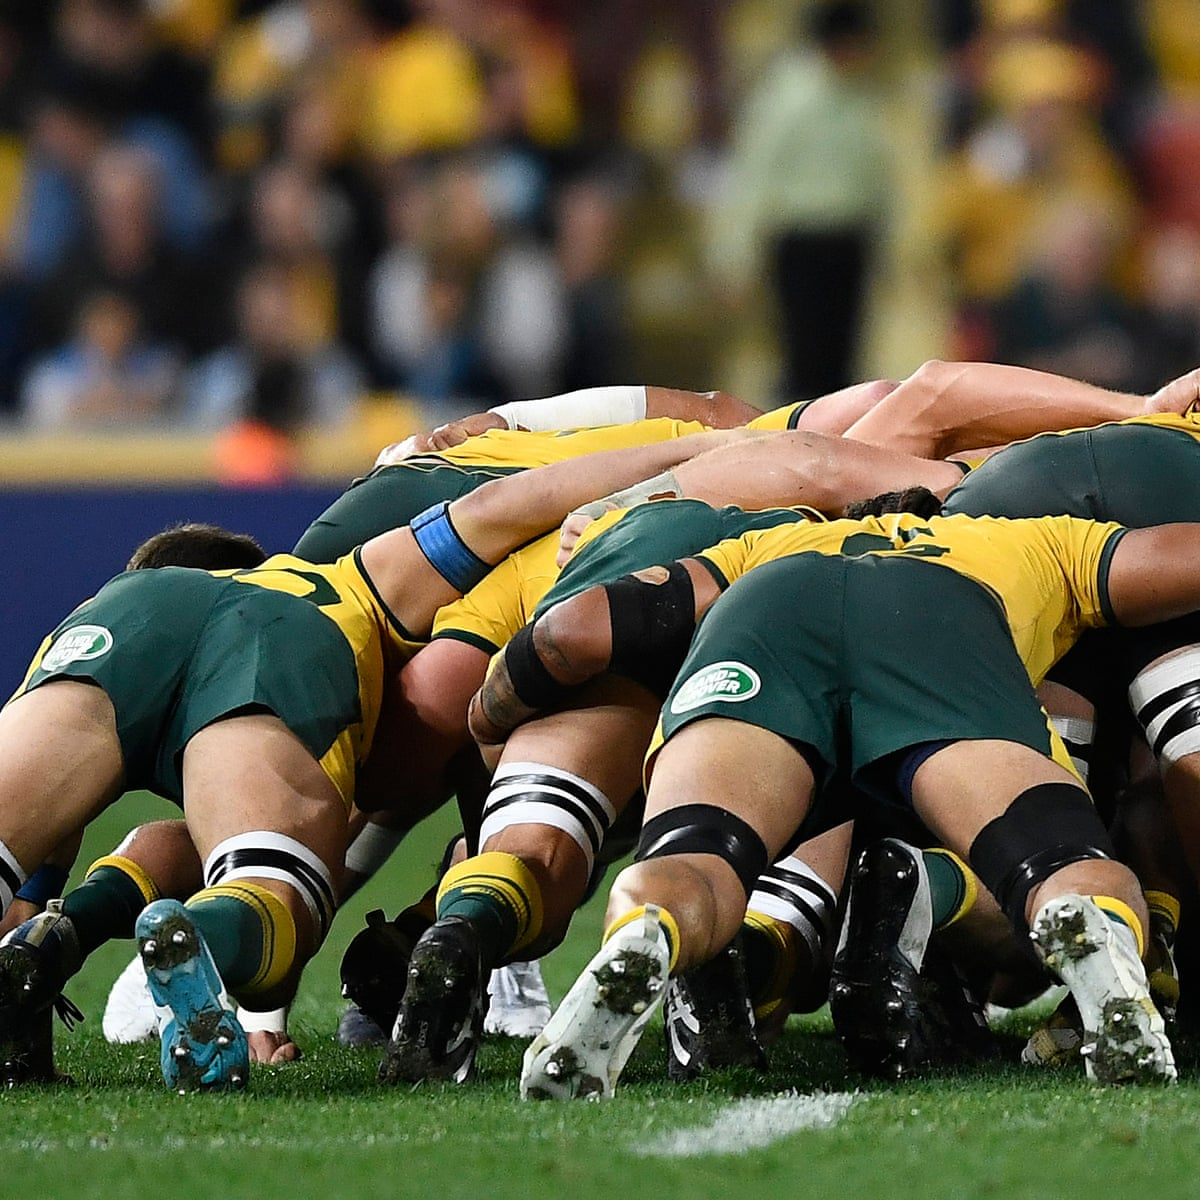 Qantas Ends 30 Year Wallabies Sponsorship Deal In Huge Blow For Rugby Australia Sport The Guardian